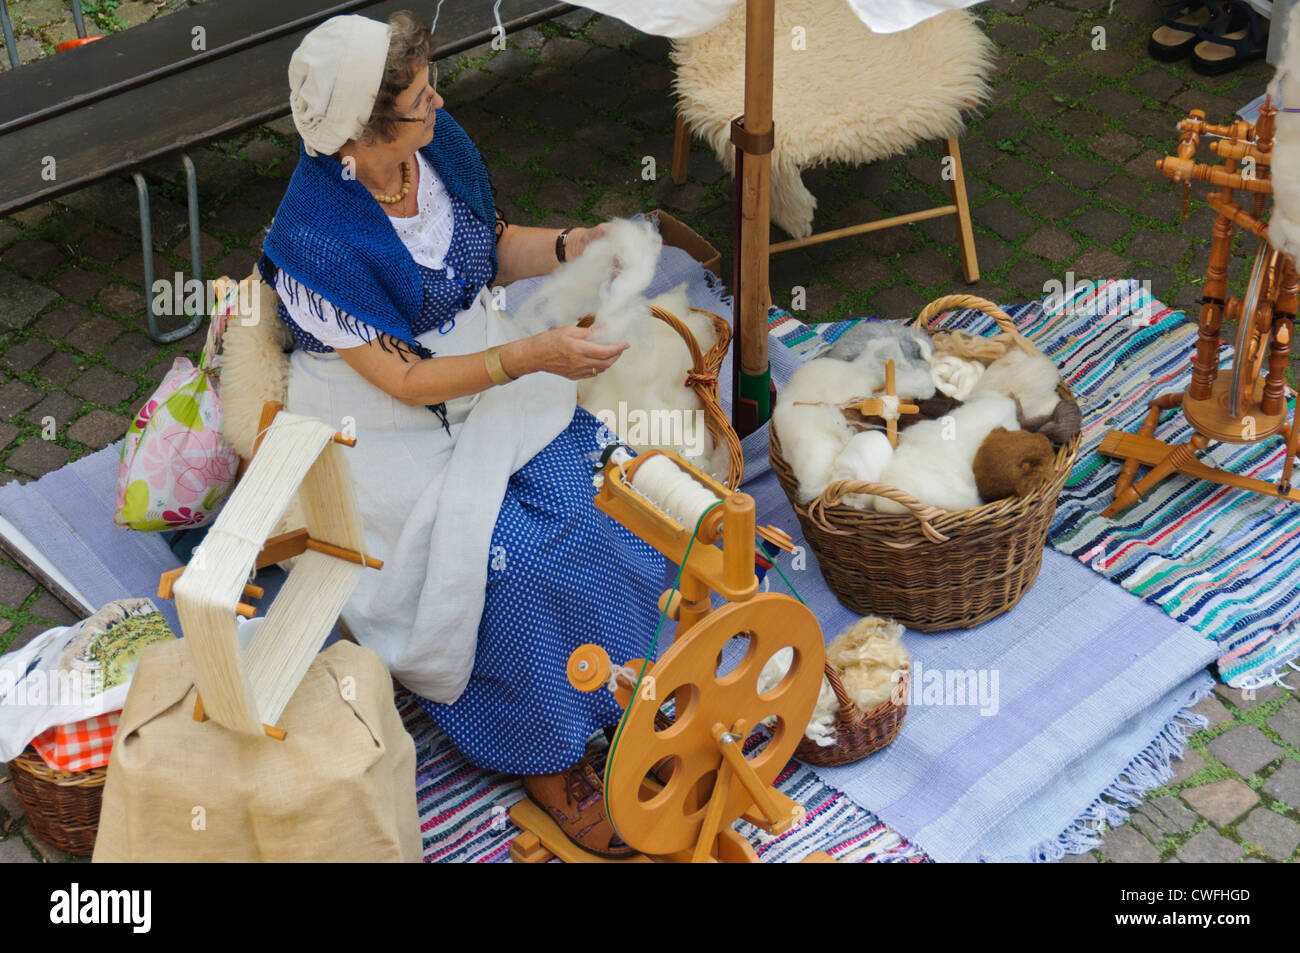 Spinstress in historic costume at a mediaeval market spins raw wool with ancient spinning historical spa Staufer - Stock Image